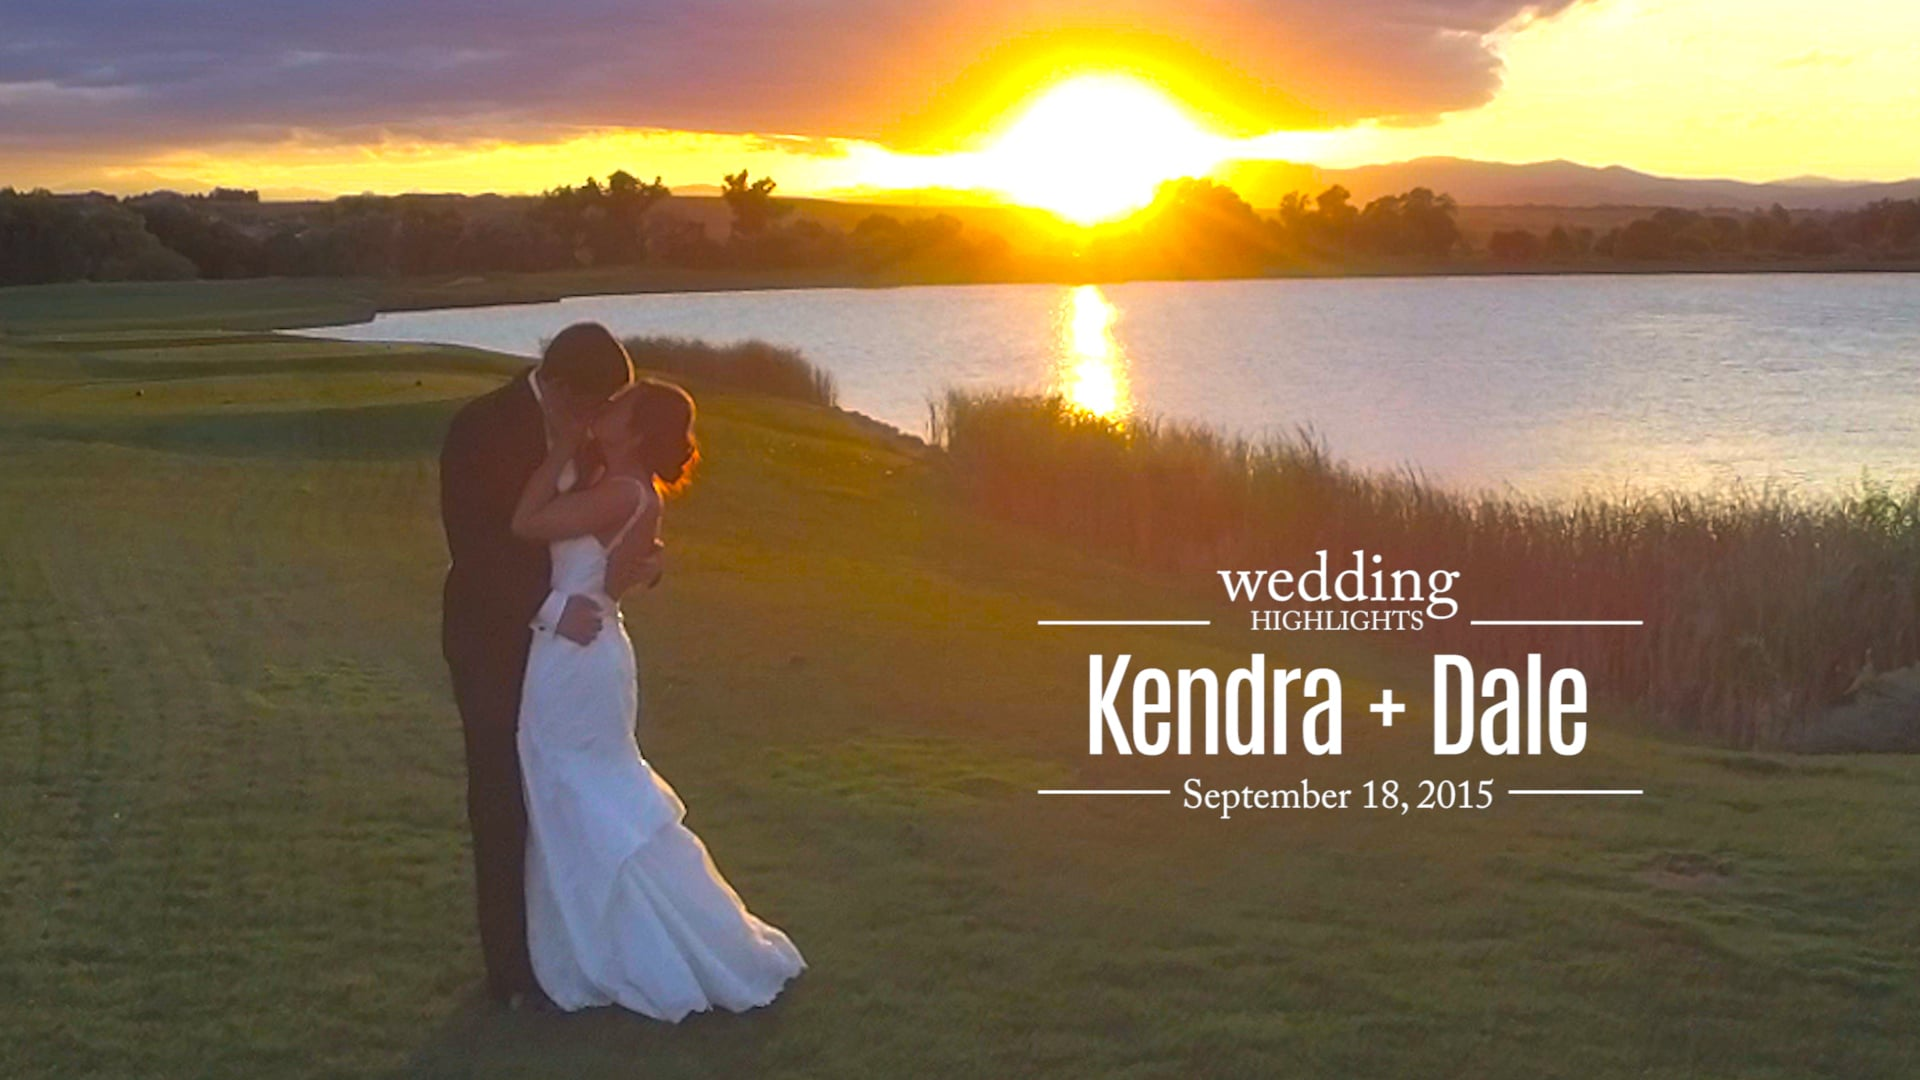 Kendra + Dale Wedding Highlights